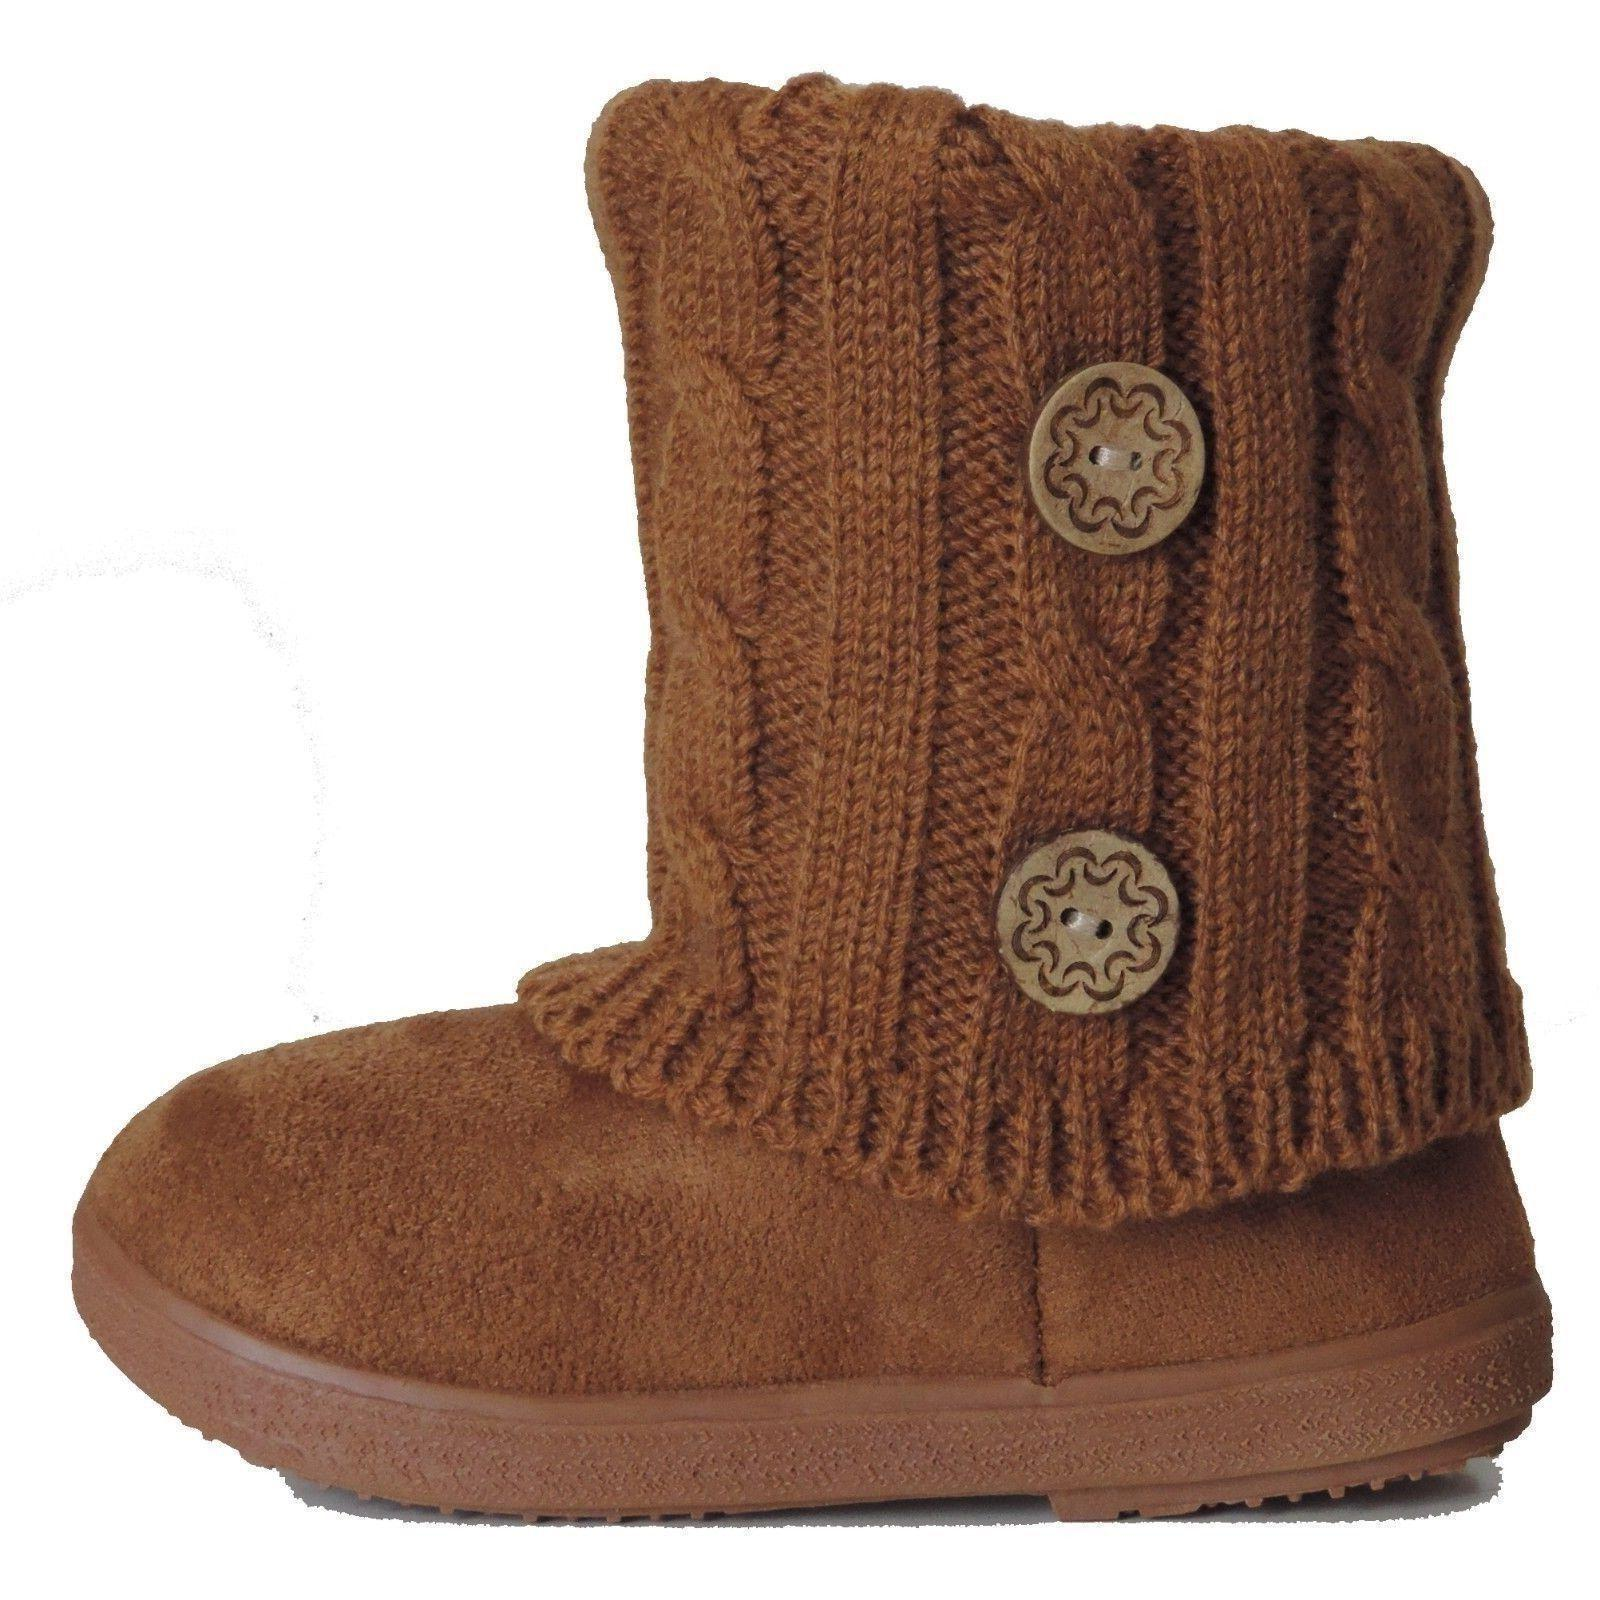 New toddler girls boots baby kids babies youth shoes